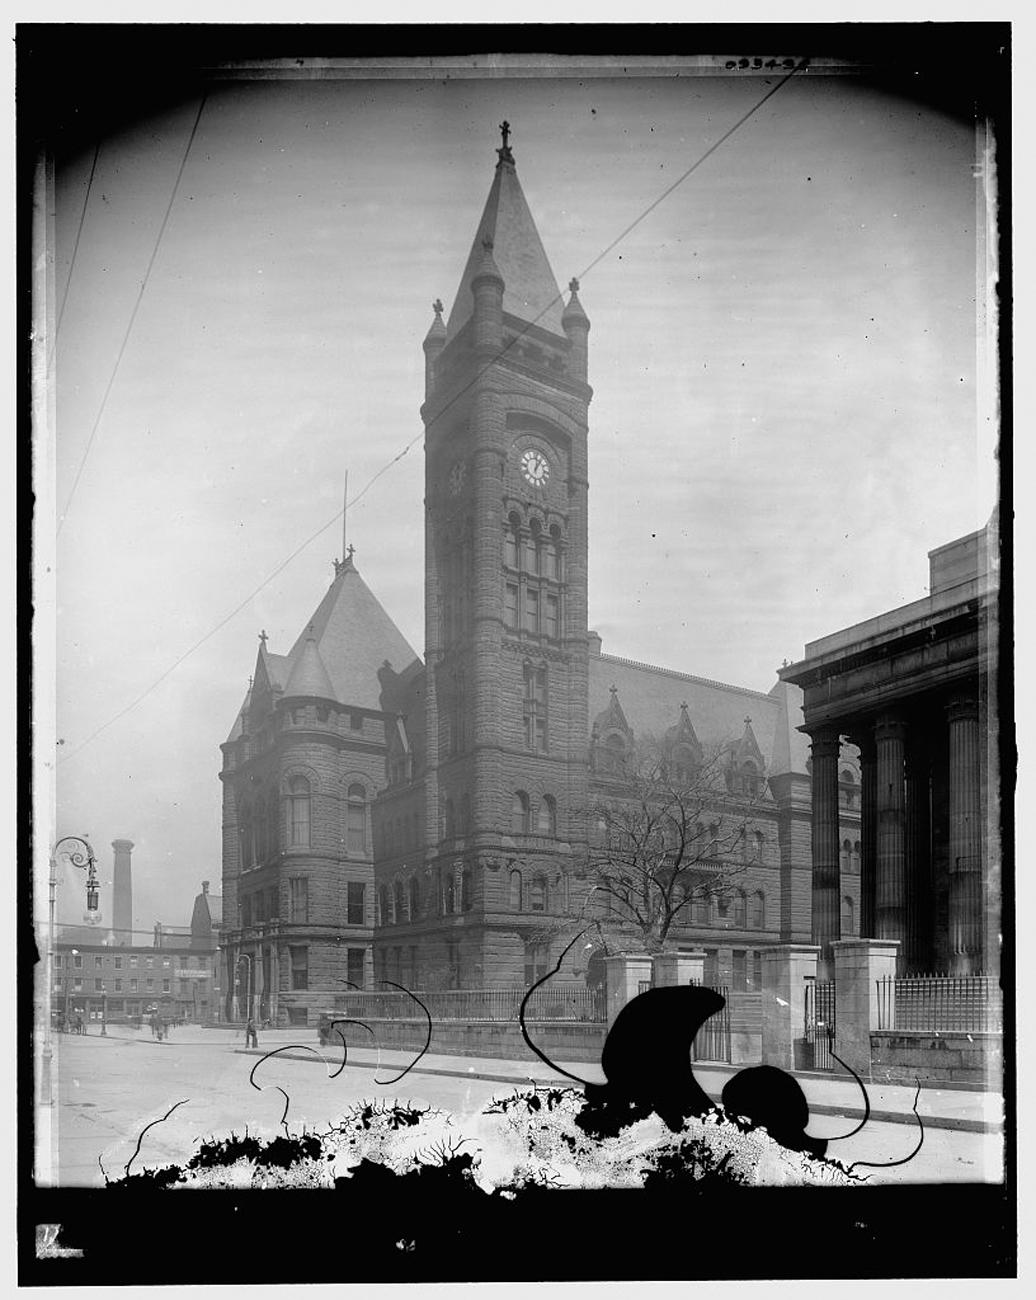 """City Hall, Cincinnati, Ohio""{ }was taken some time between 1900 and 1910. Since this is from a photographic negative, the perspective is actually reversed. / Image: Detroit Publishing Co. accessed via the Library of Congress // Published: 3.4.19"